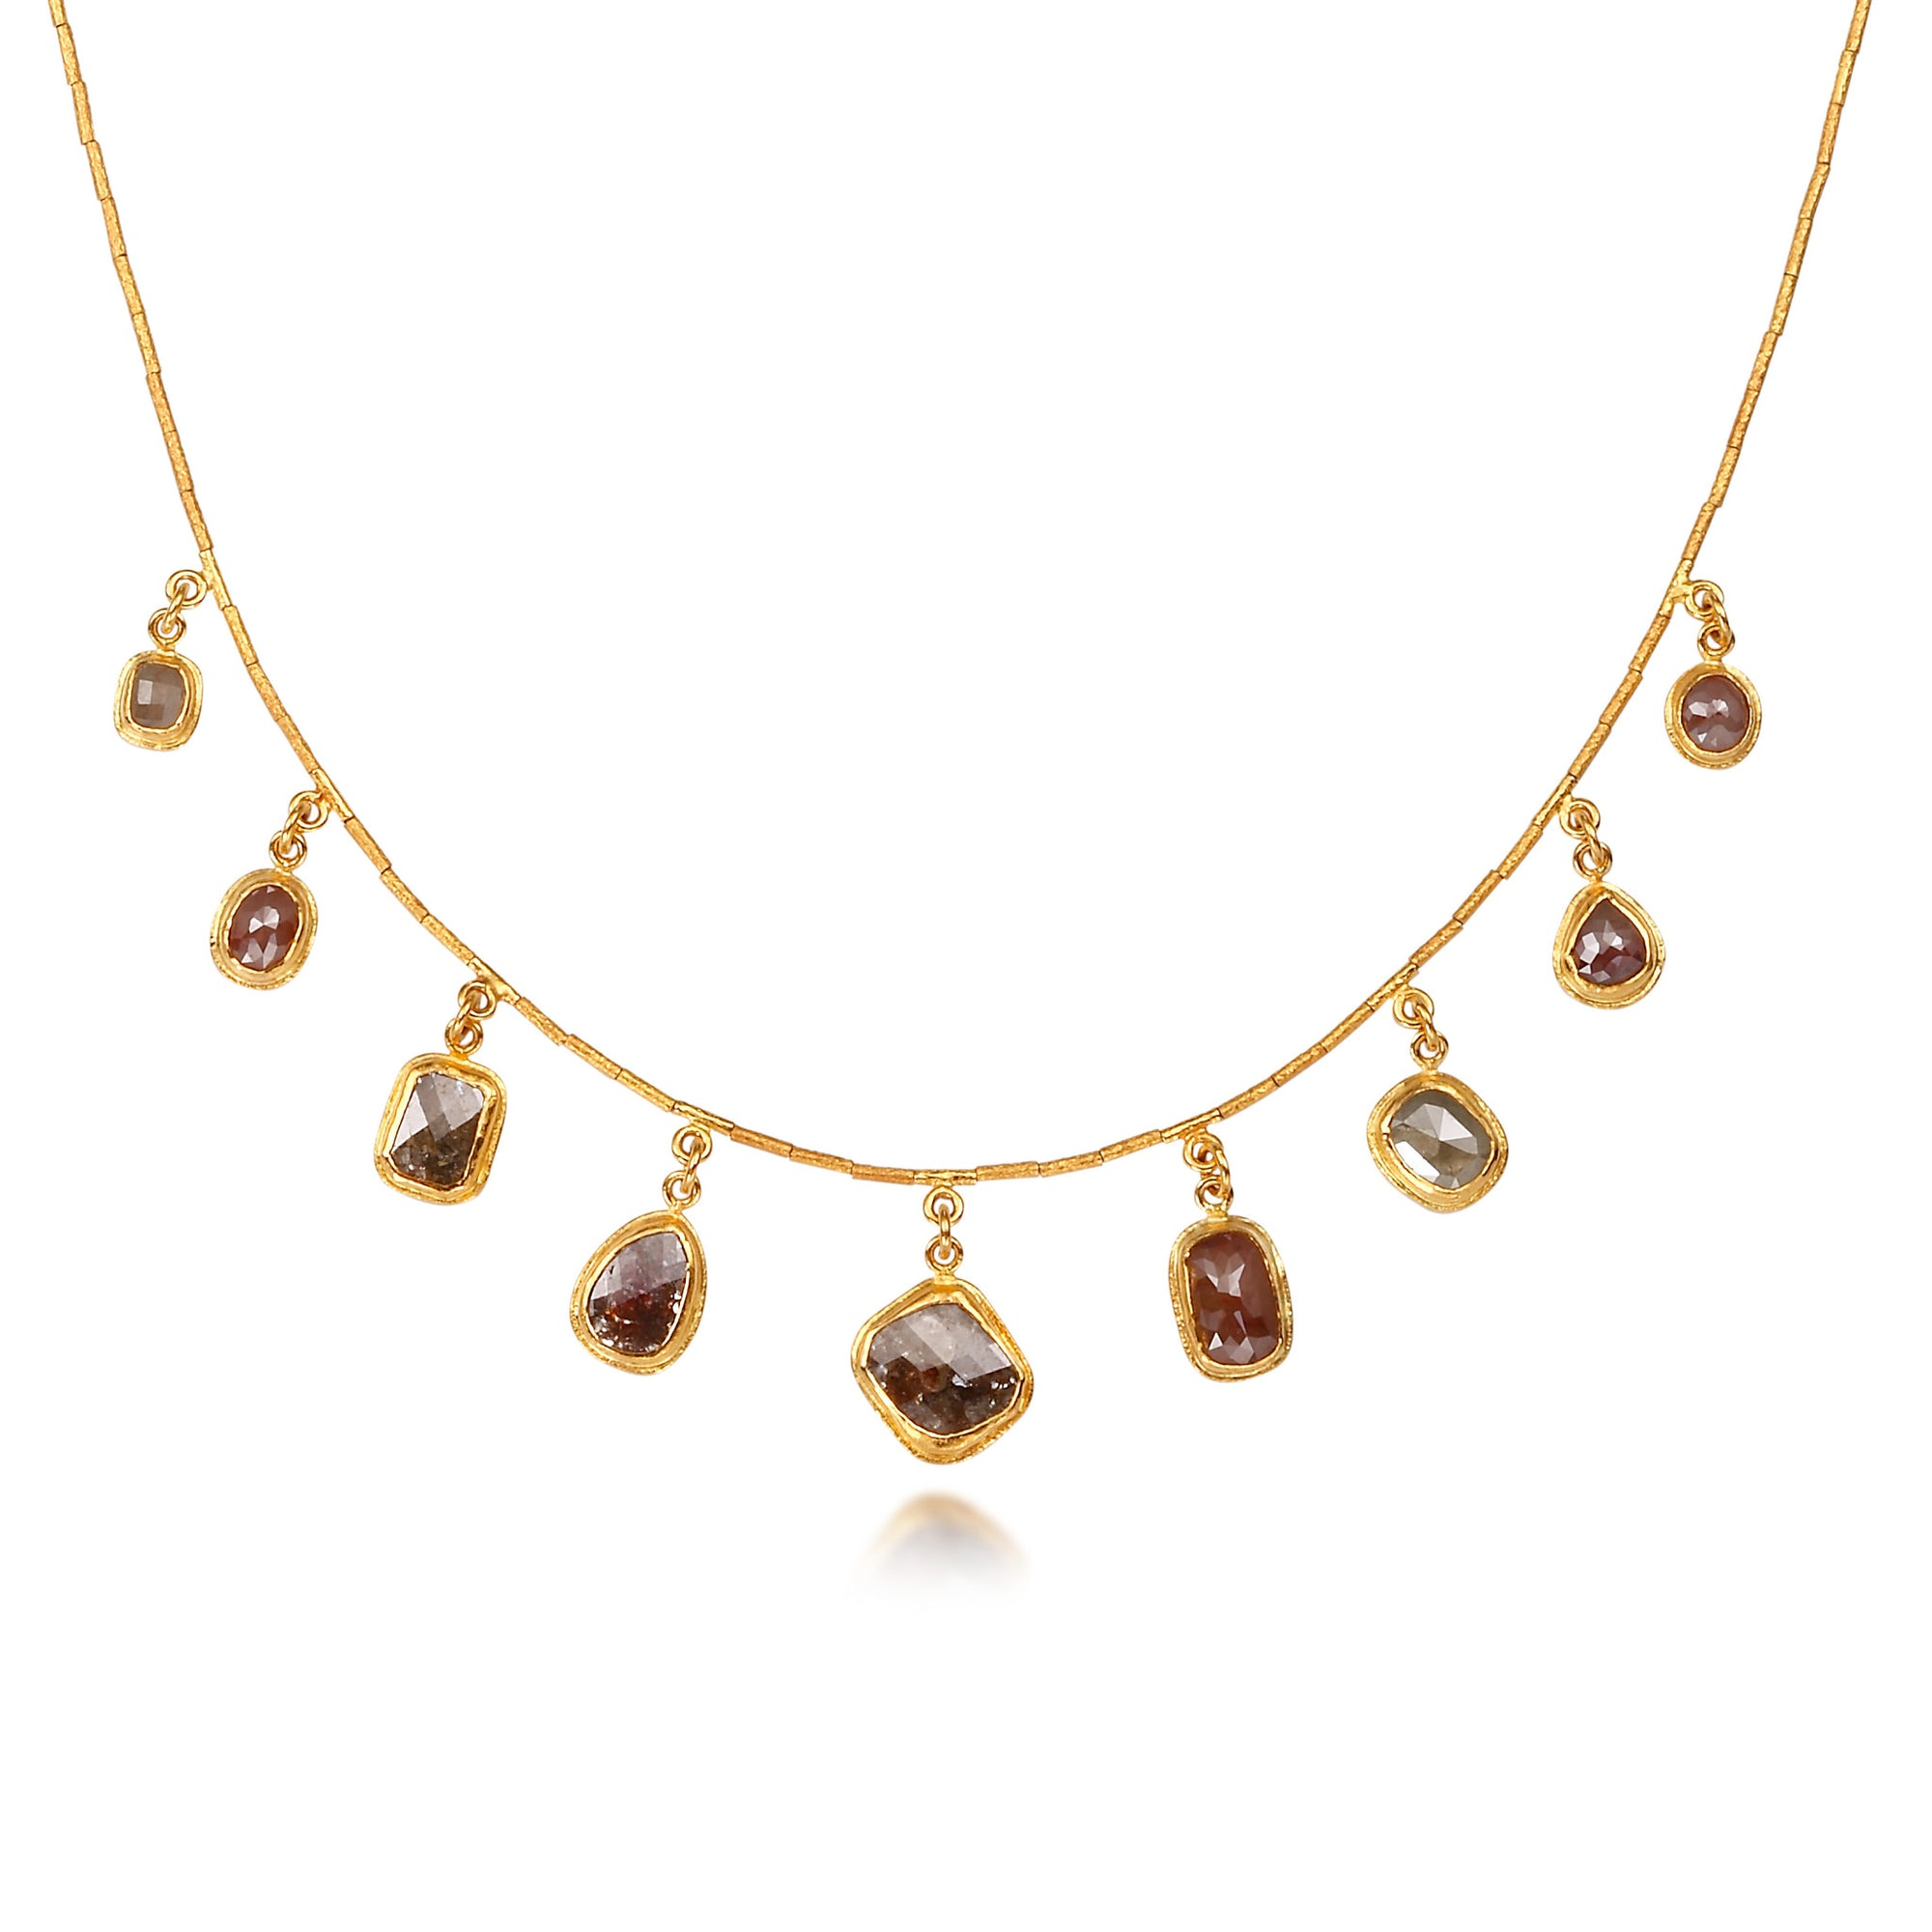 Diamond dangly necklace Diamond charm necklace Diamond gold chain necklace Multi diamond Diamond gift for her Diamond slice necklace